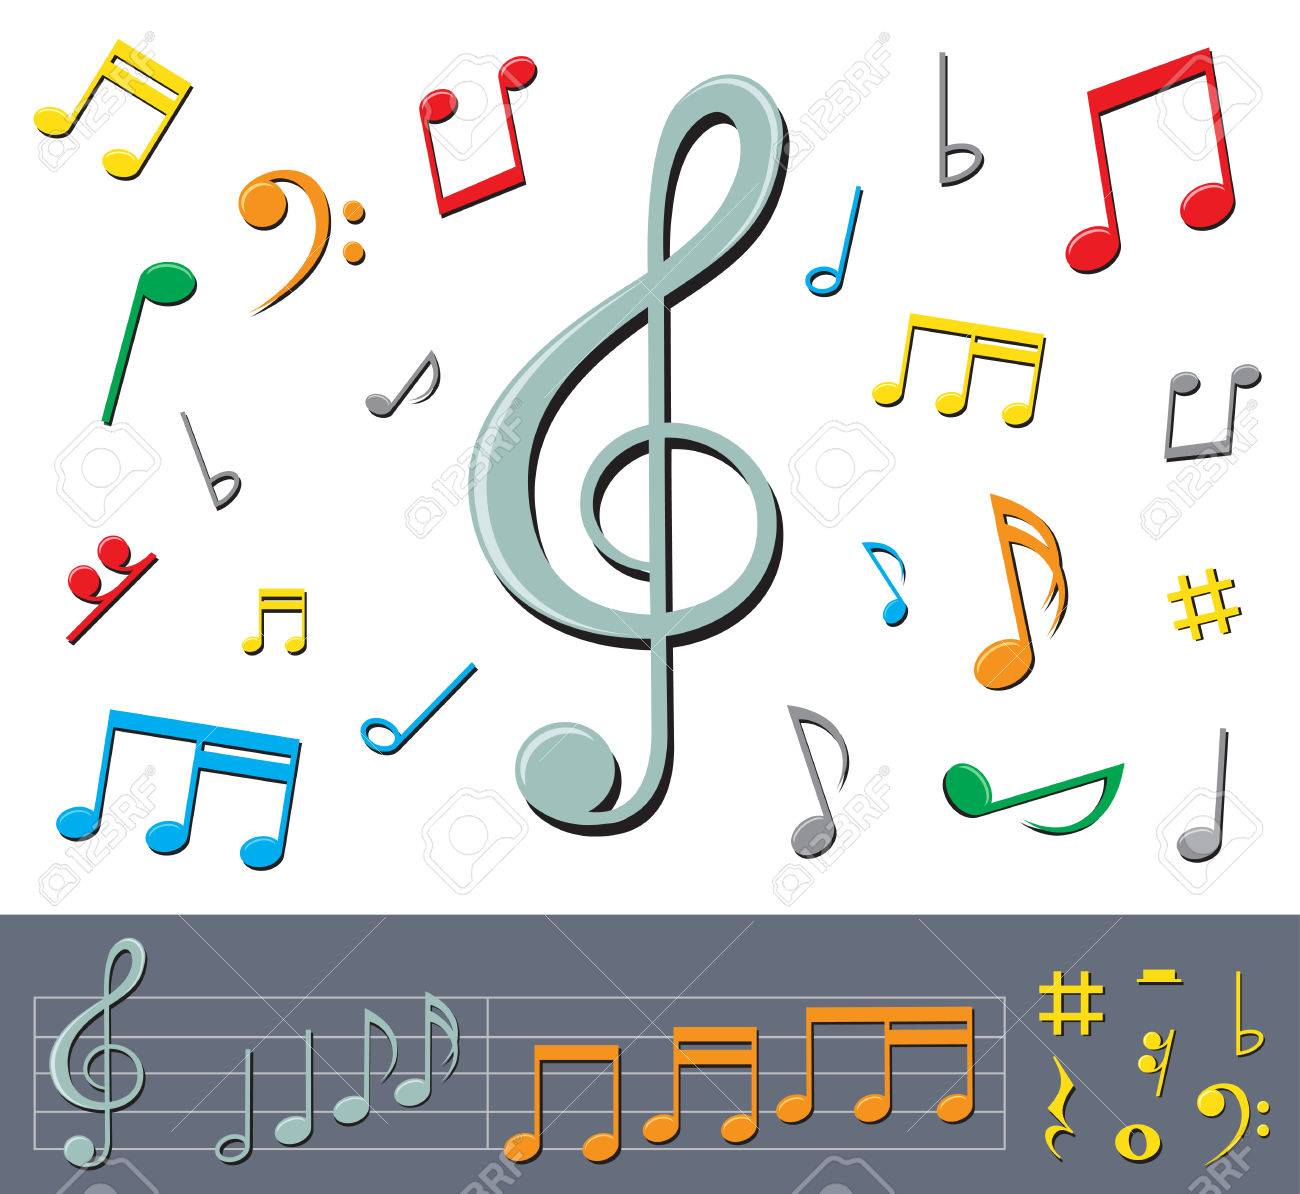 Musical notes staff background on white vector by tassel78 image - Music Notes Color Set Of Basic Color Notes And Signs With Shadows On The White